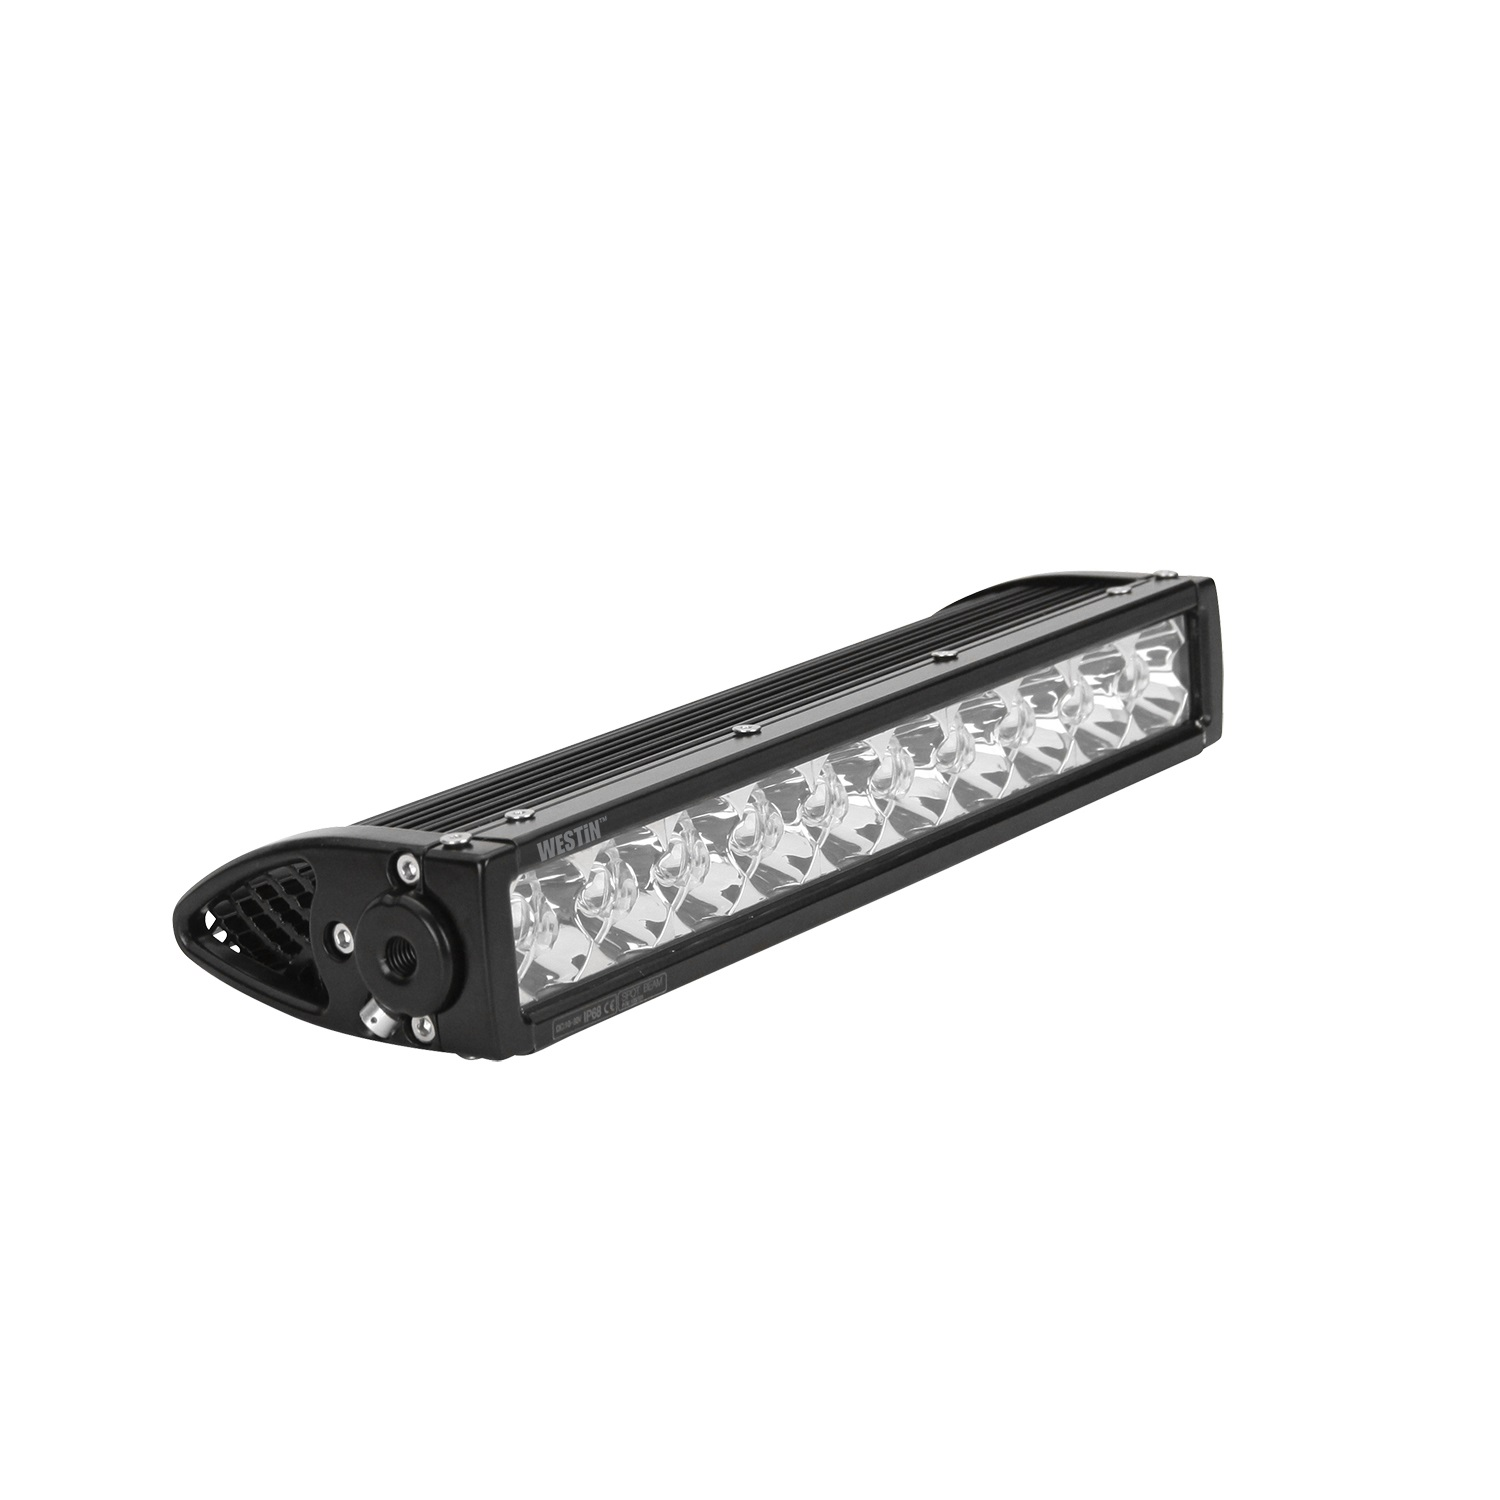 Westin 09-12231-10F LED Light Bar  High Performance  Single Row 10 in.  Flood  w/5W Cree  Incl. Light/Mounting Hardware/Wire Harness w at Sears.com